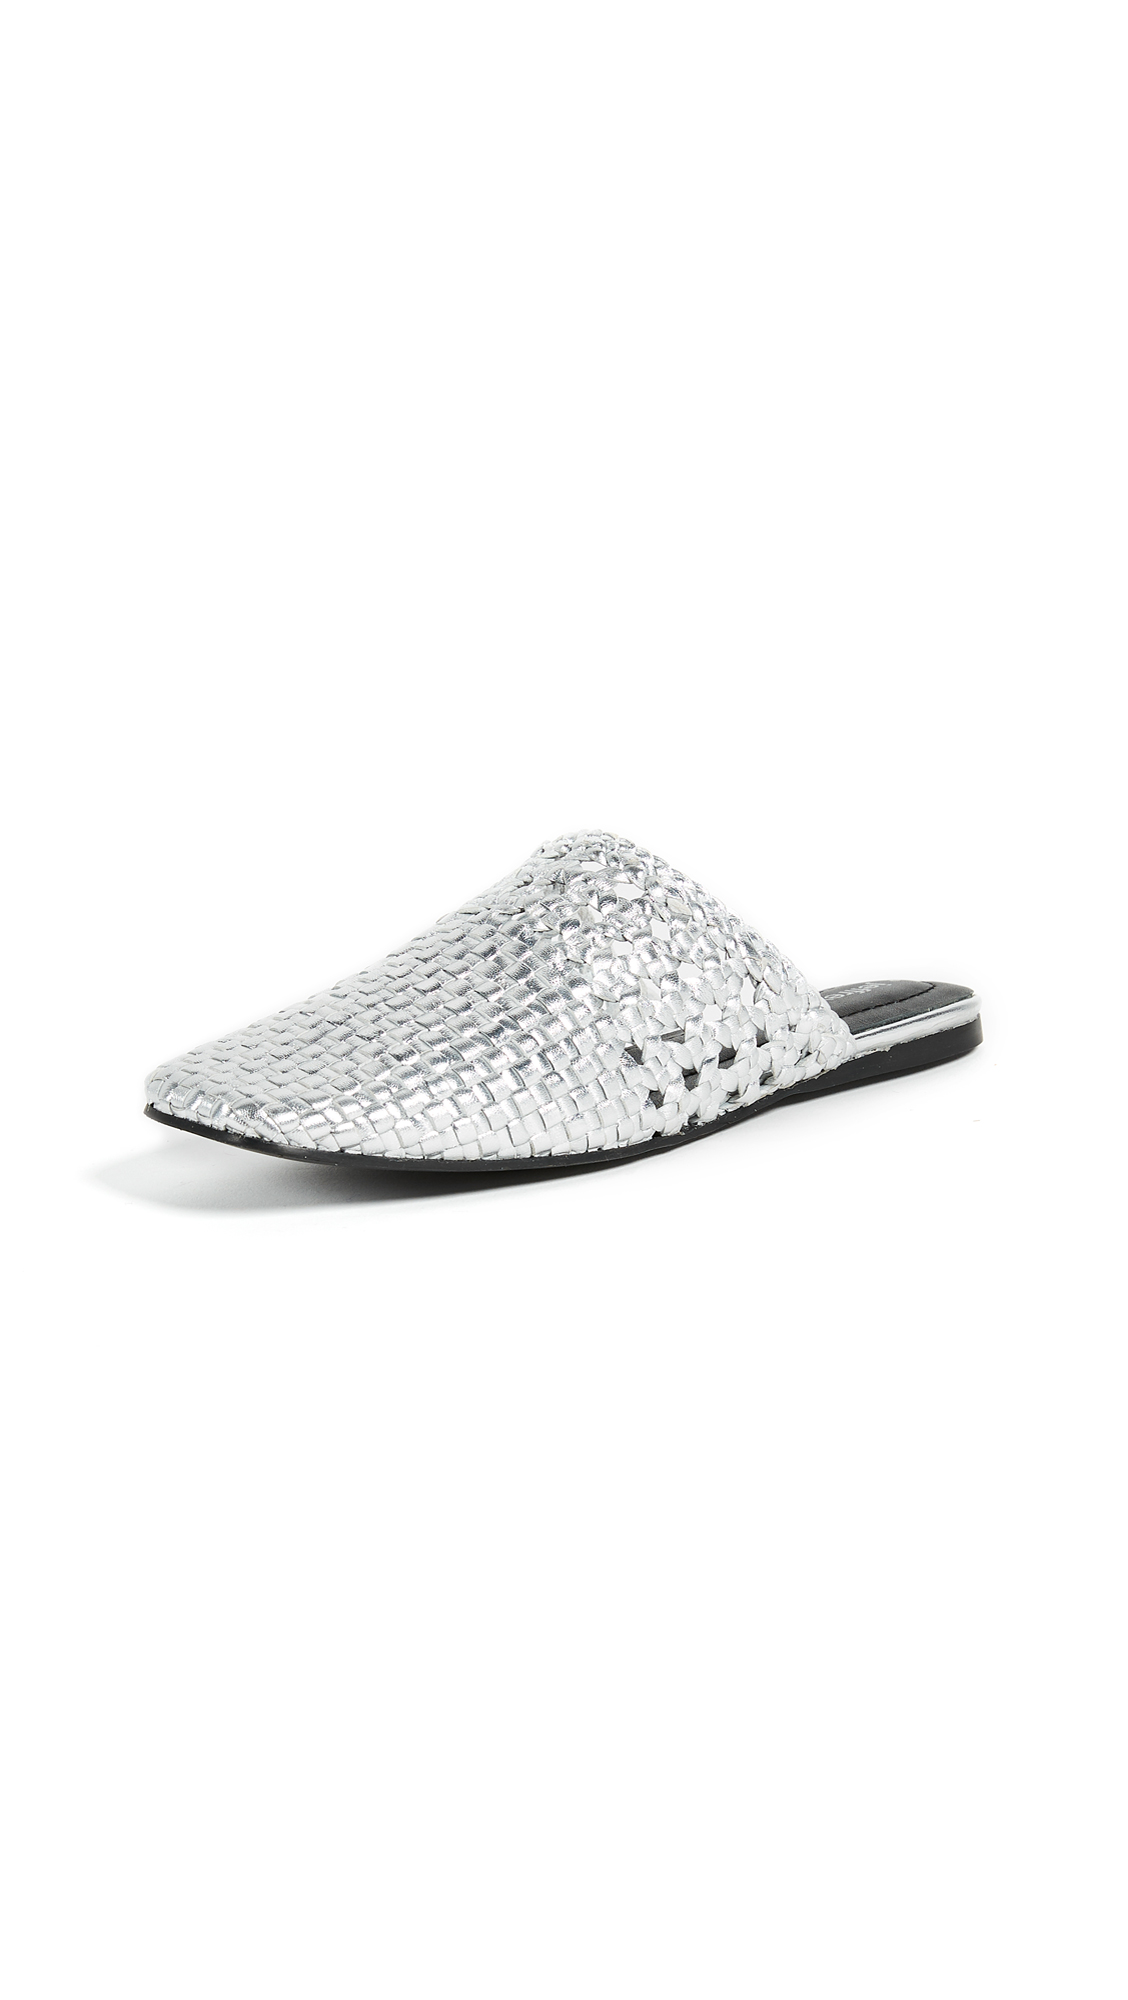 Jeffrey Campbell Vaal Woven Mules - Silver